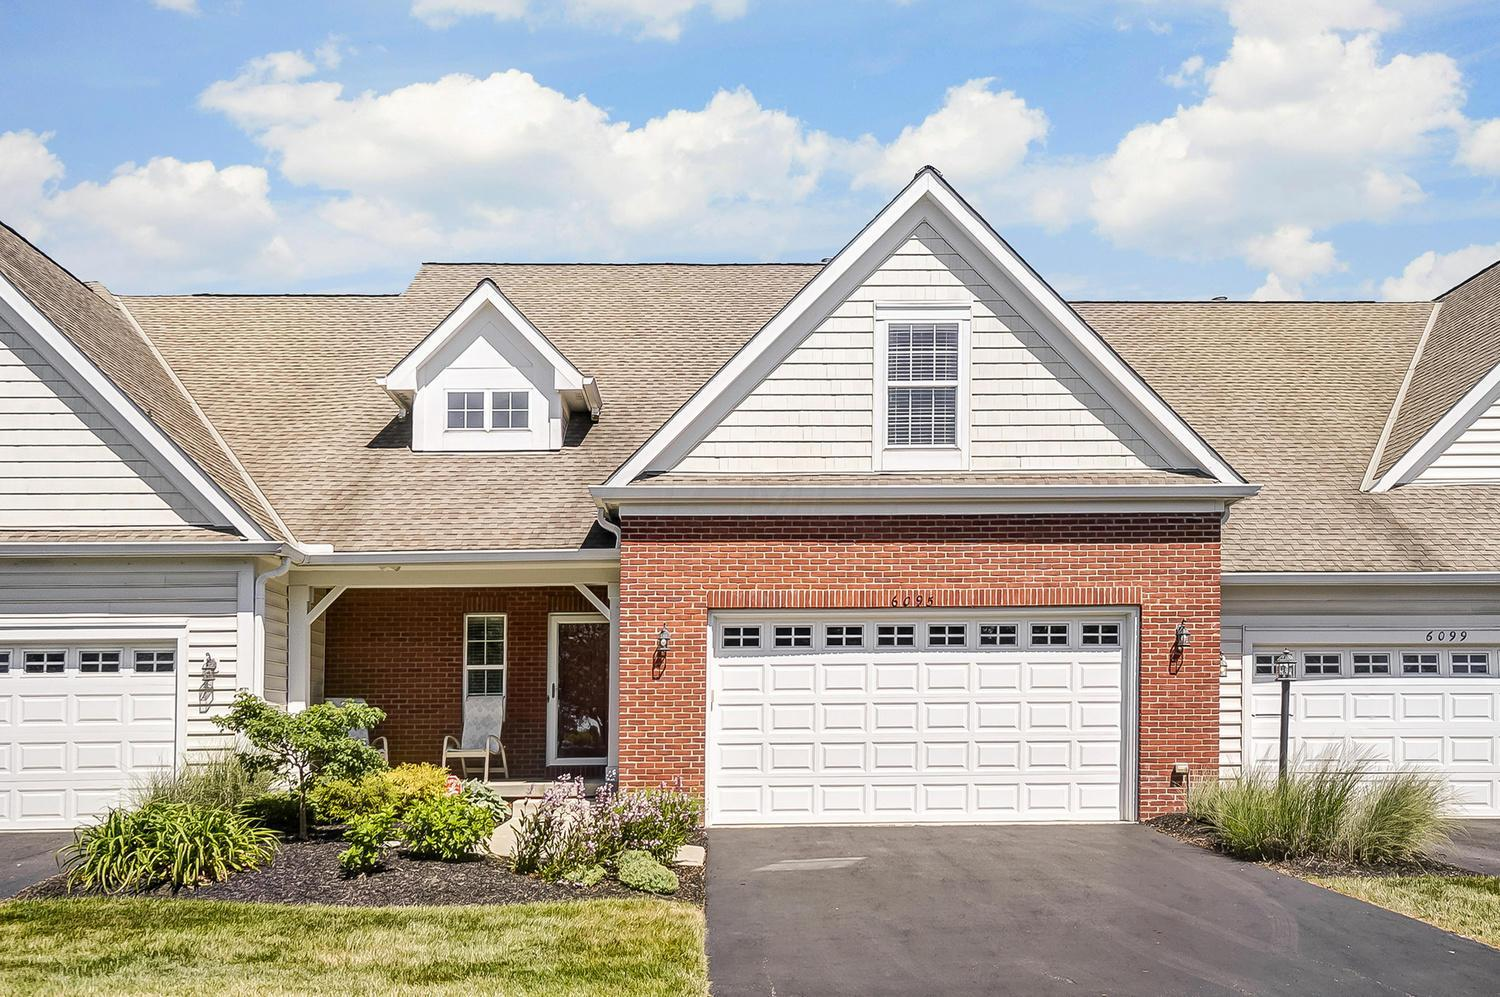 6095 Rays Way, Hilliard, Ohio 43026, 4 Bedrooms Bedrooms, ,4 BathroomsBathrooms,Residential,For Sale,Rays,220019039